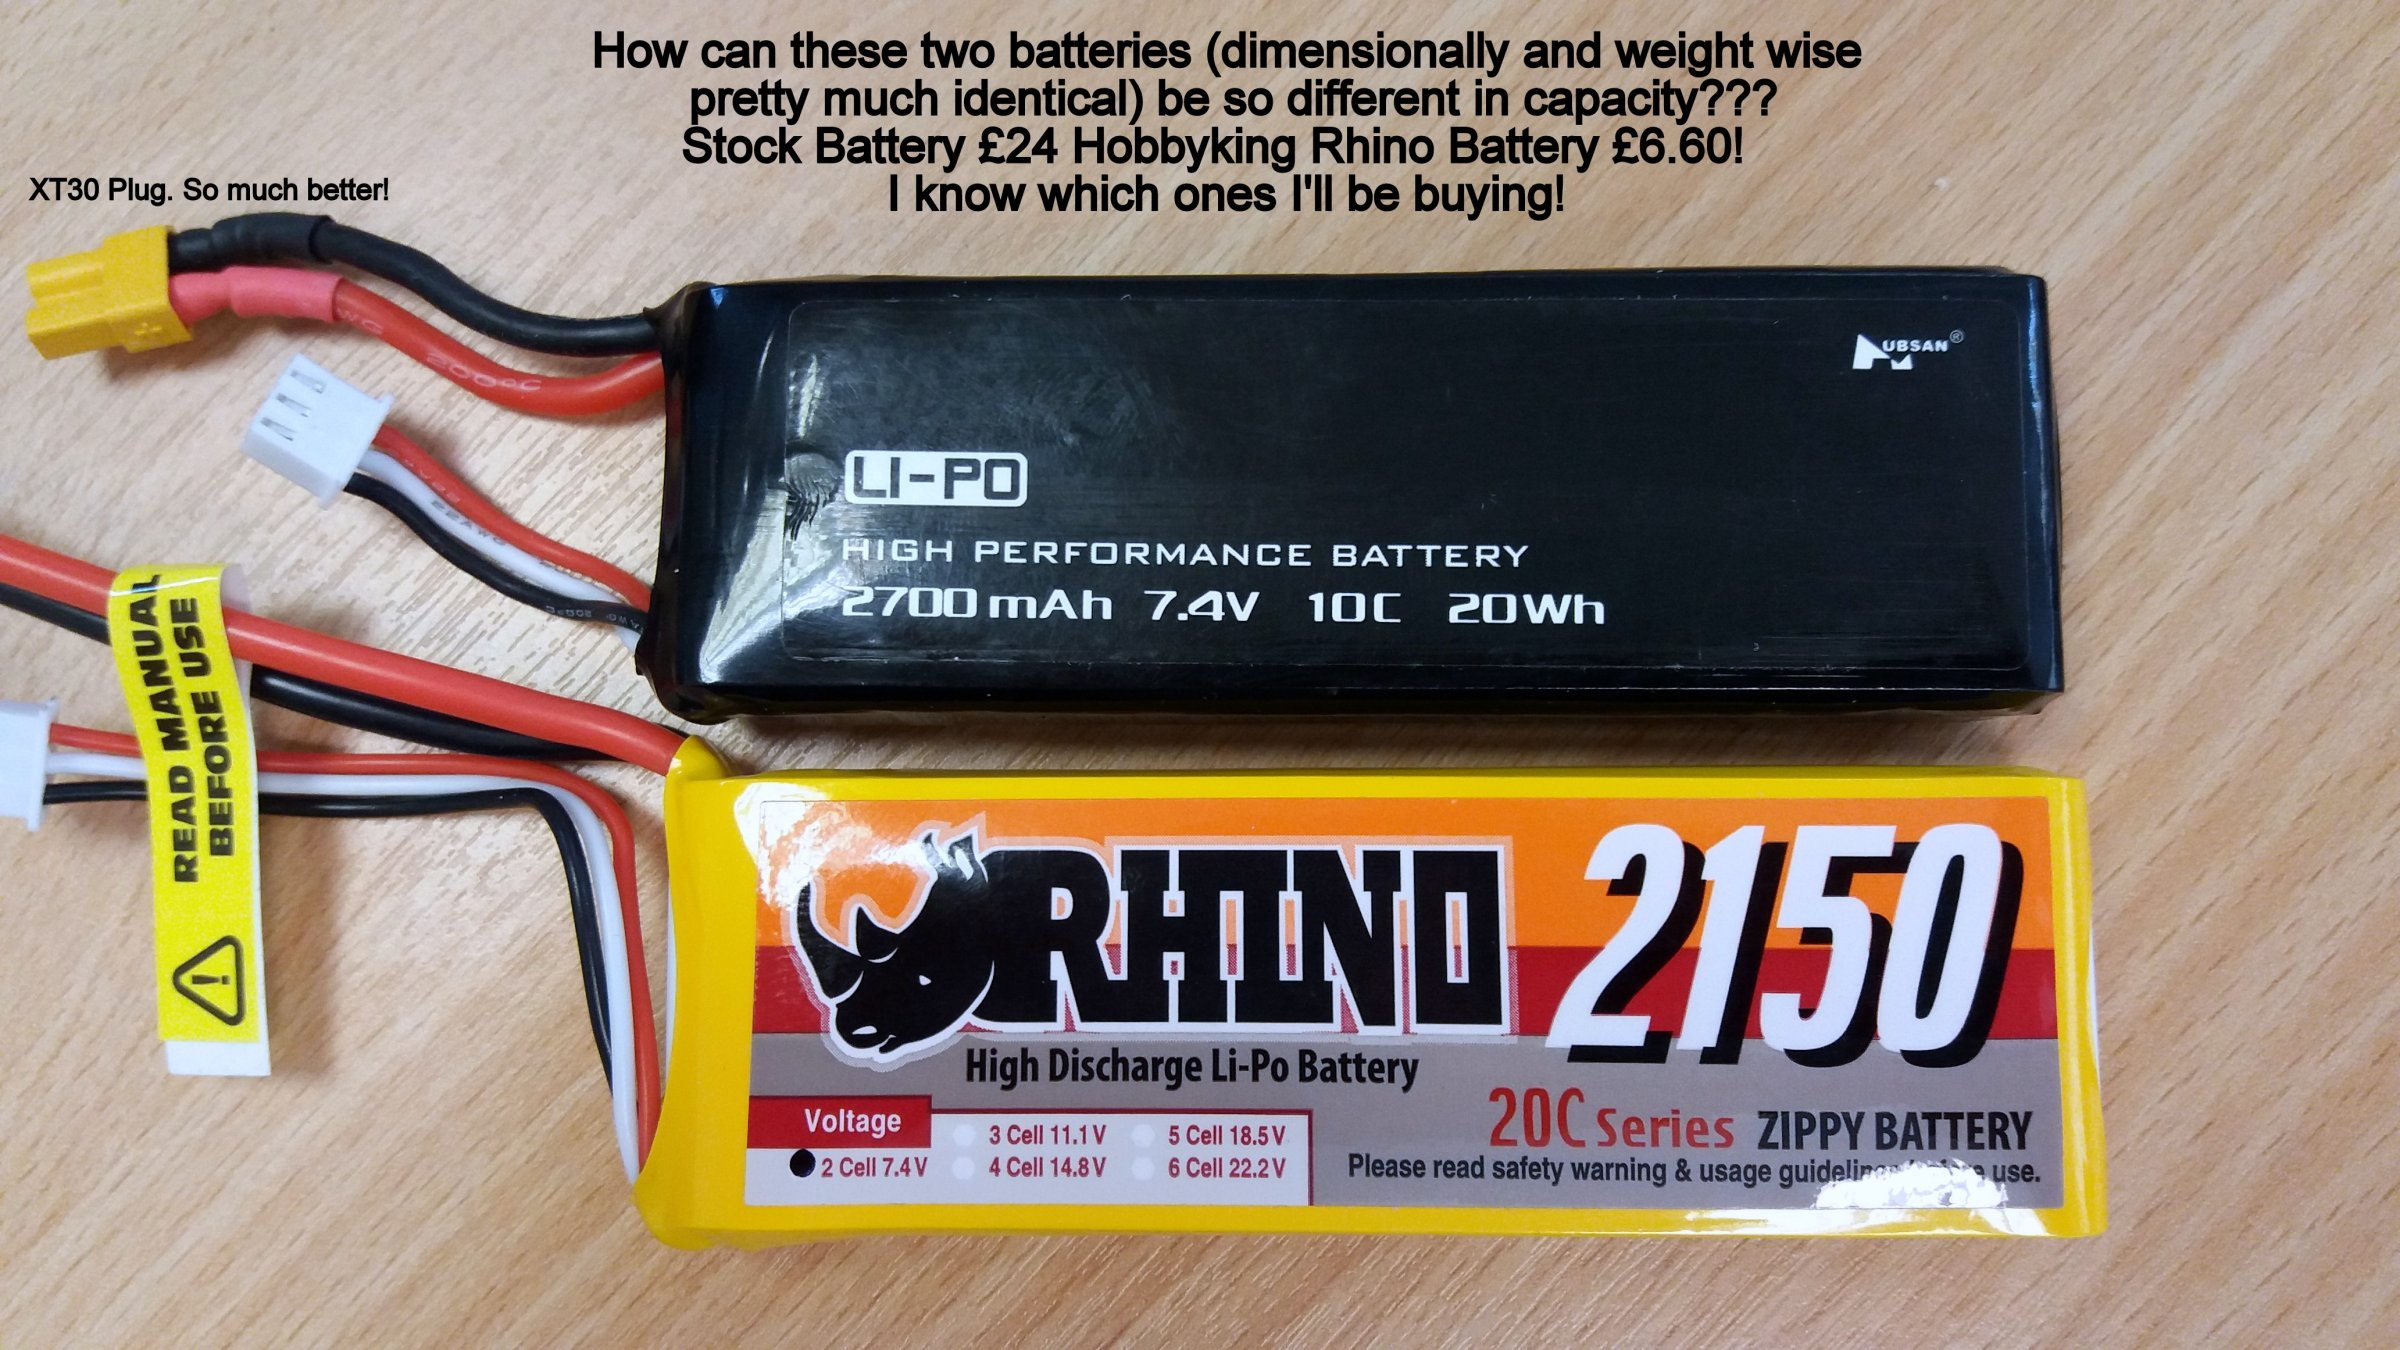 hubsan h501s batteria  Found! An Alternative Flight Battery For Hubsan H501S! | DroneFlyers ...